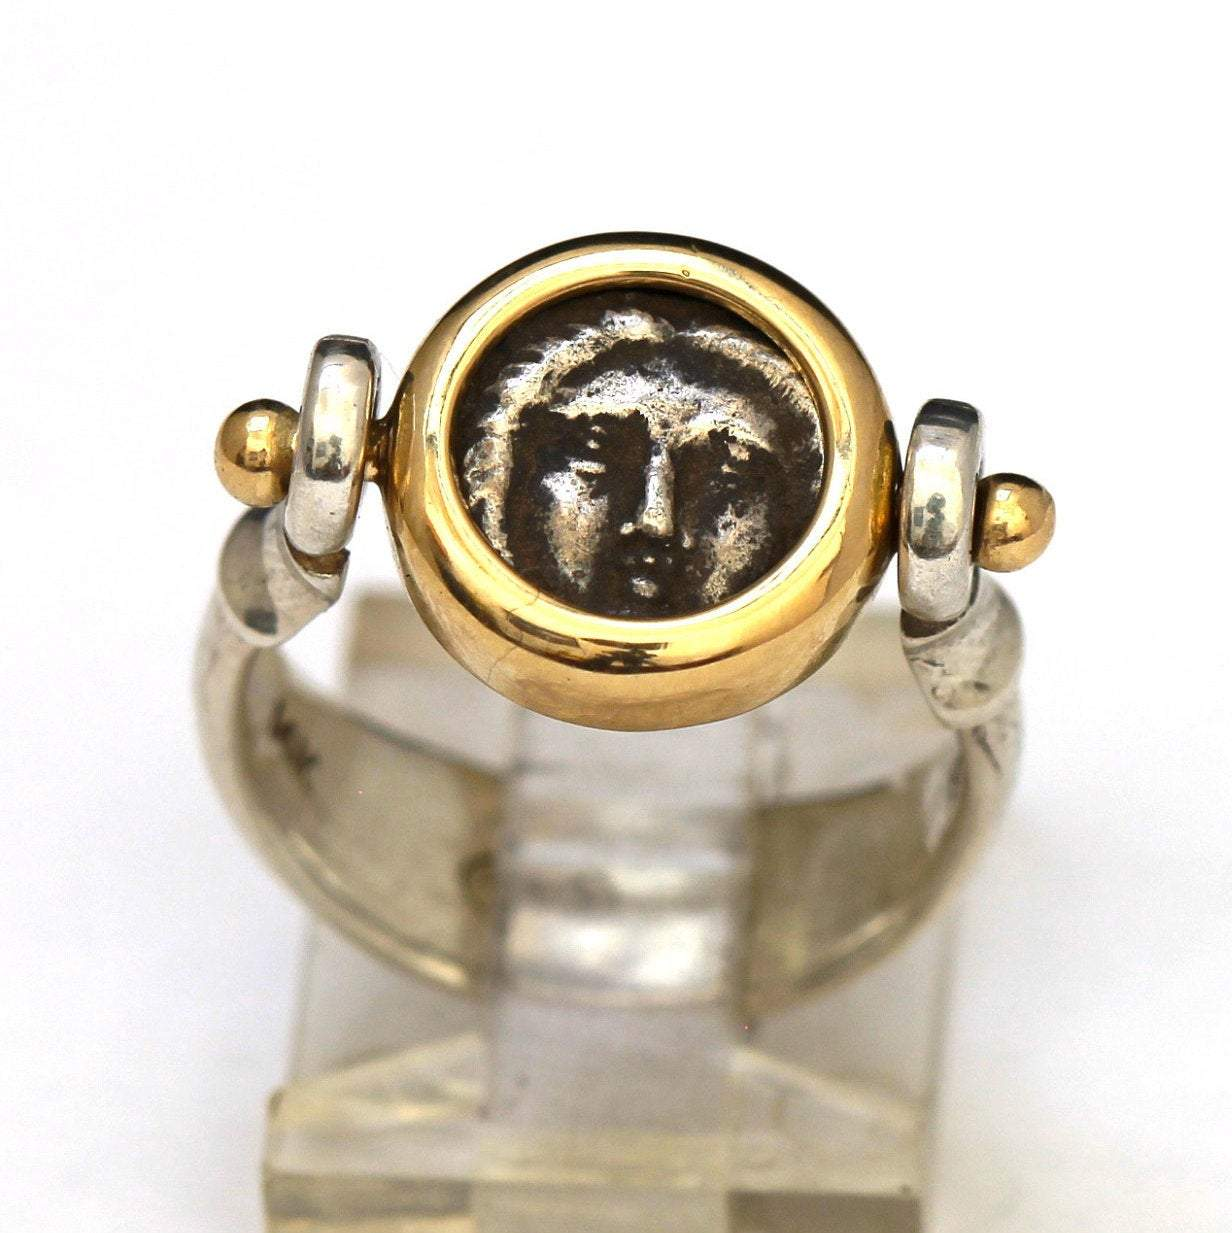 Apollo Flip Ring, Genuine Greek Silver Coin, 14K Gold, Sterling Silver Shank, w/Cert 6276 - Erez Ancient Coin Jewelry